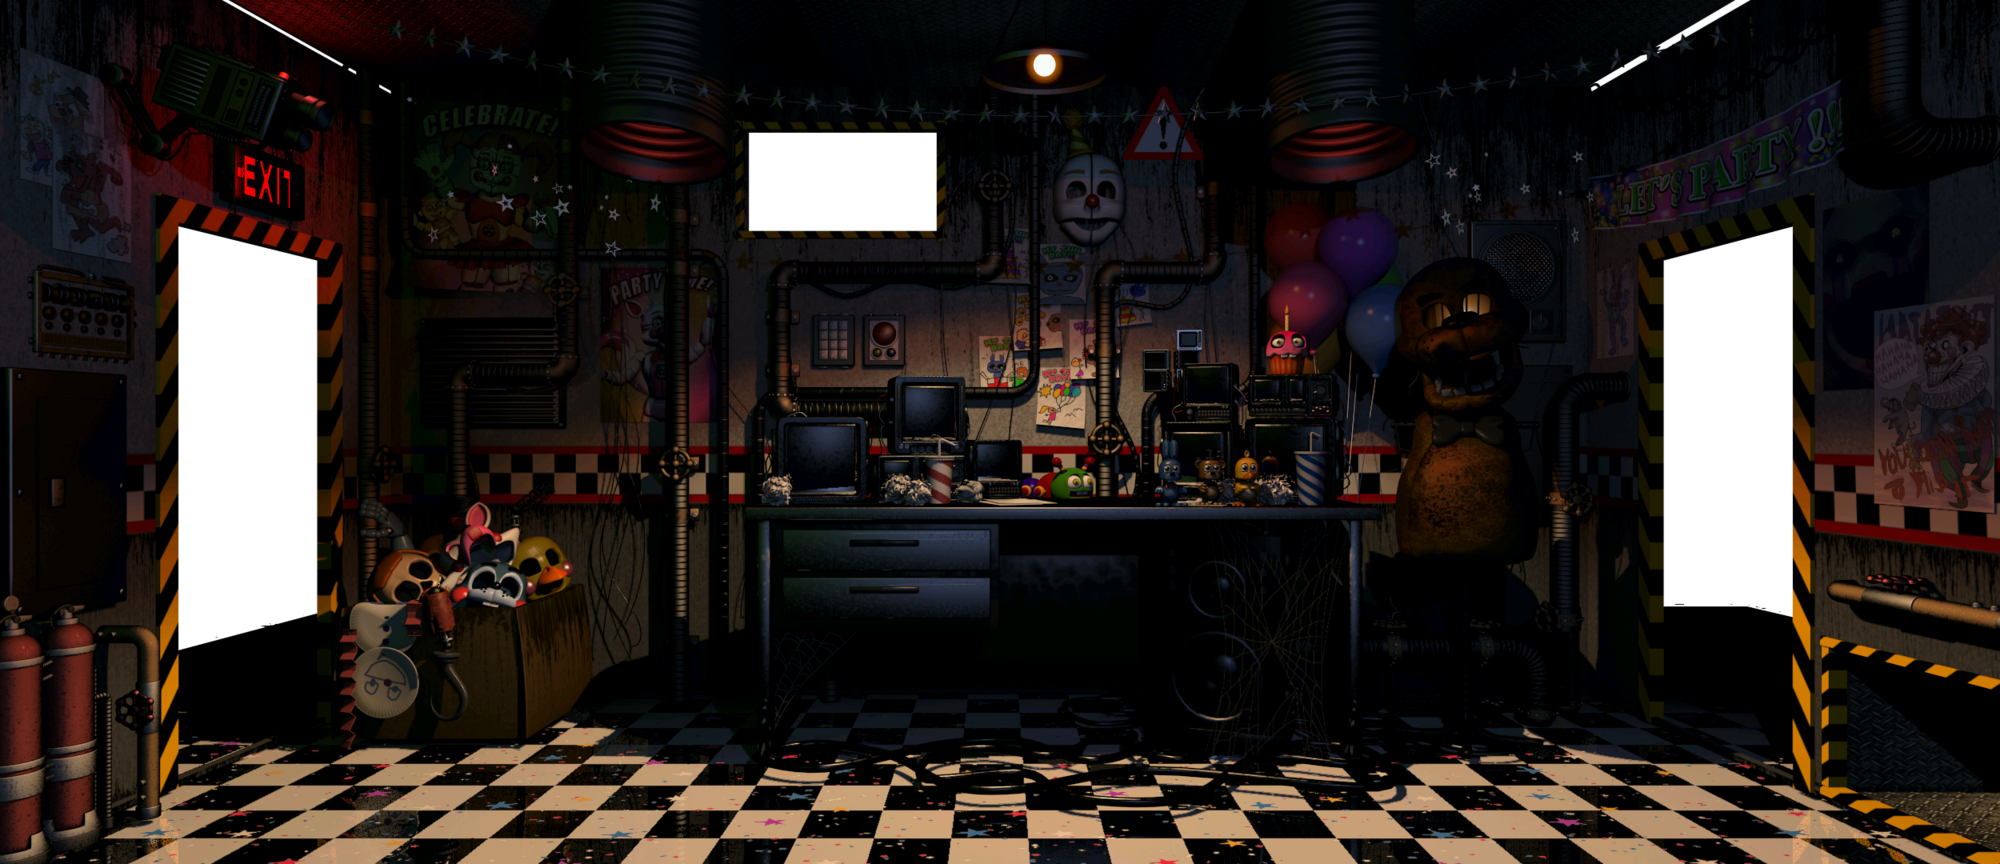 The Ultimate Office Freddy Fazbears Pizzeria Simulator